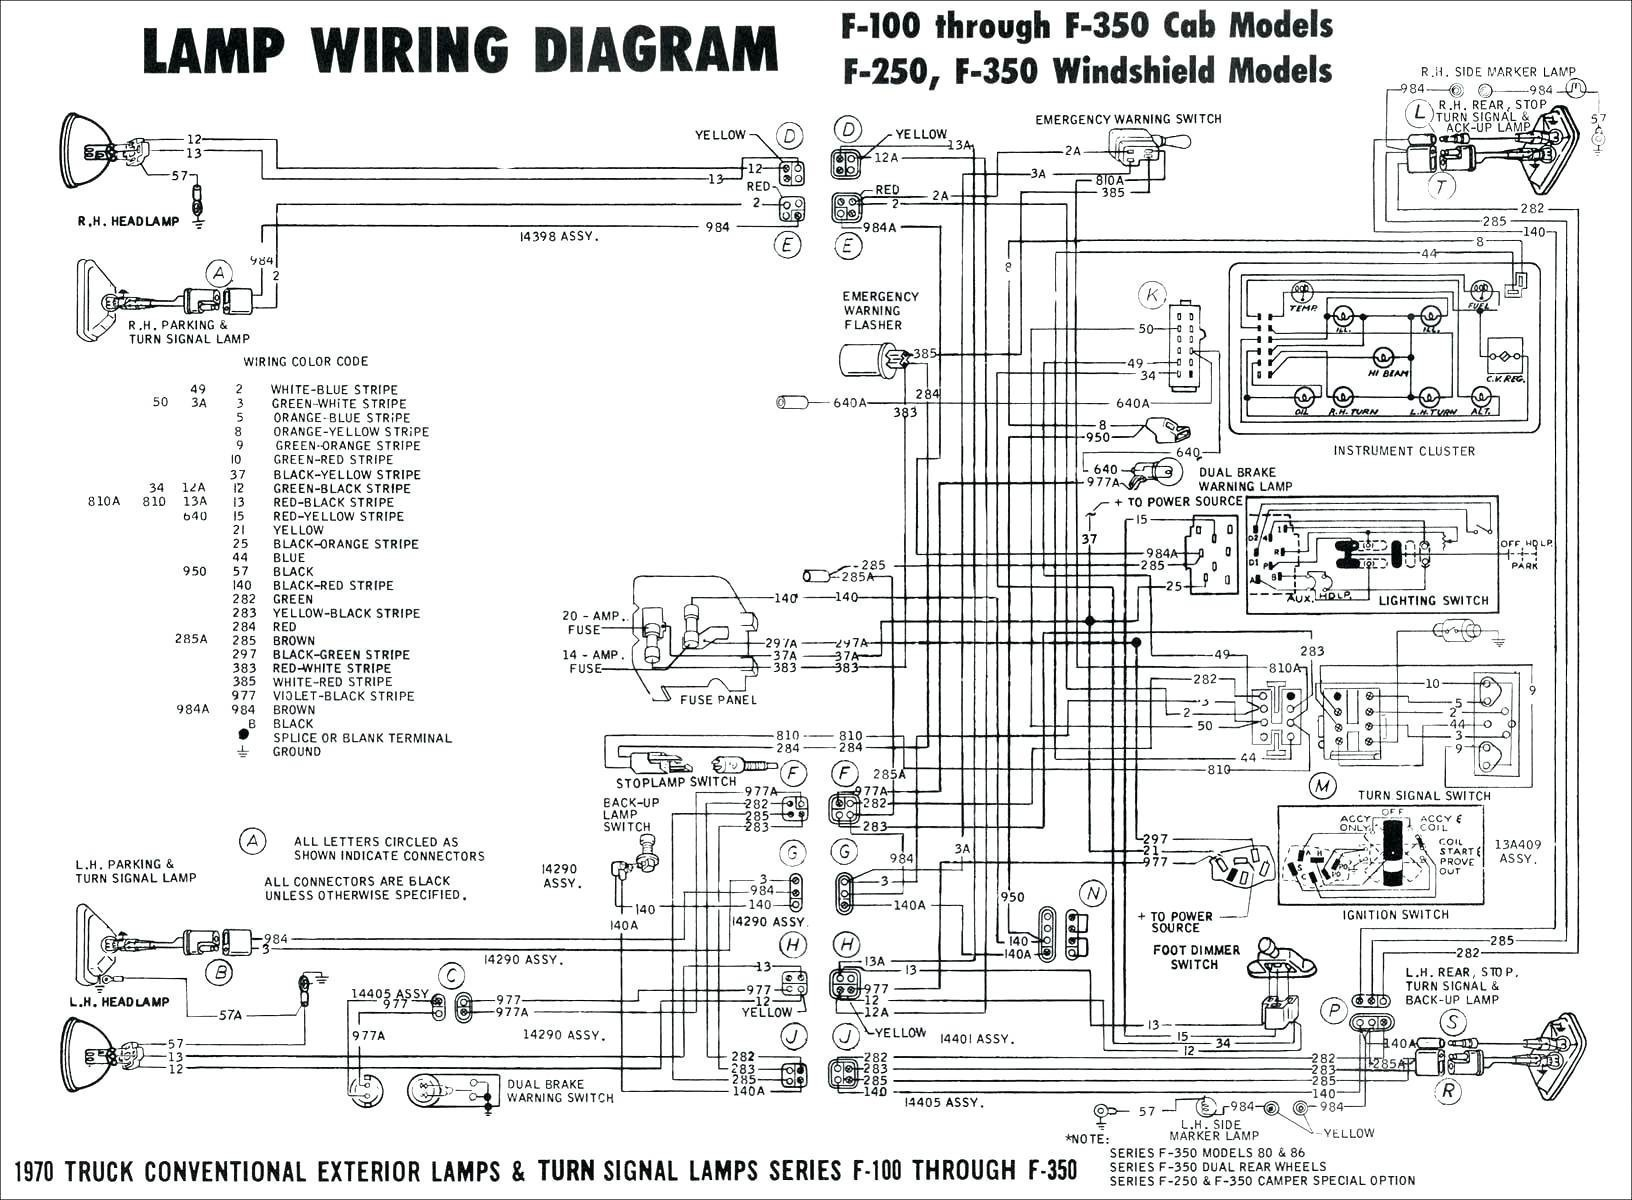 2001 Honda Civic Alternator Wiring Diagram Wiring Data Schema \u2022 2000  Civic Ignition Diagram 2002 Honda Civic Ignition Switch Wiring Diagram